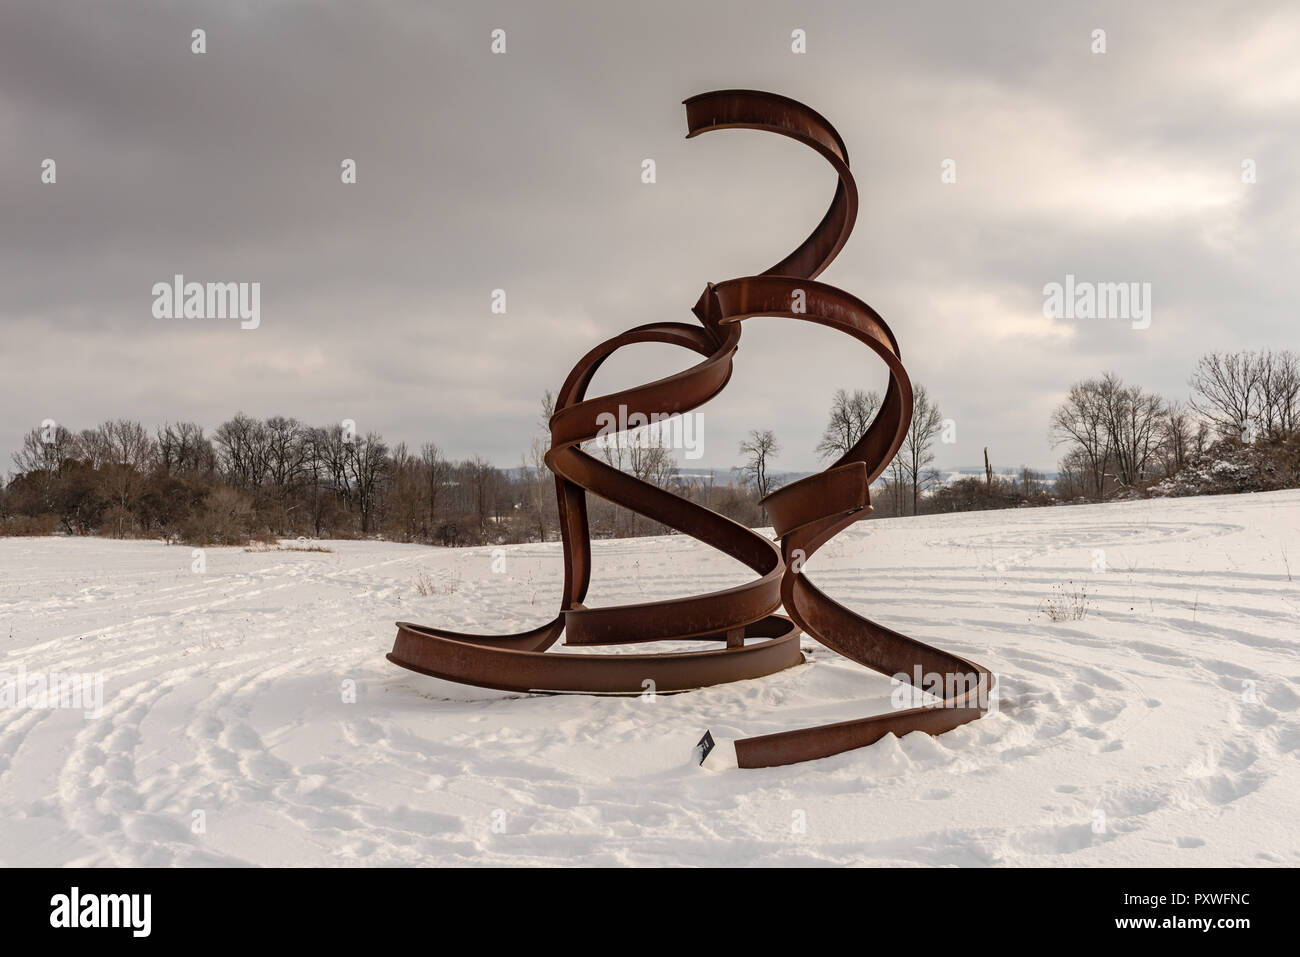 Dancer, by Carole Eisner, at at the Stone Quarry Hill Art Park in the town of Cazenovia in Madison County in Central New York. Stock Photo